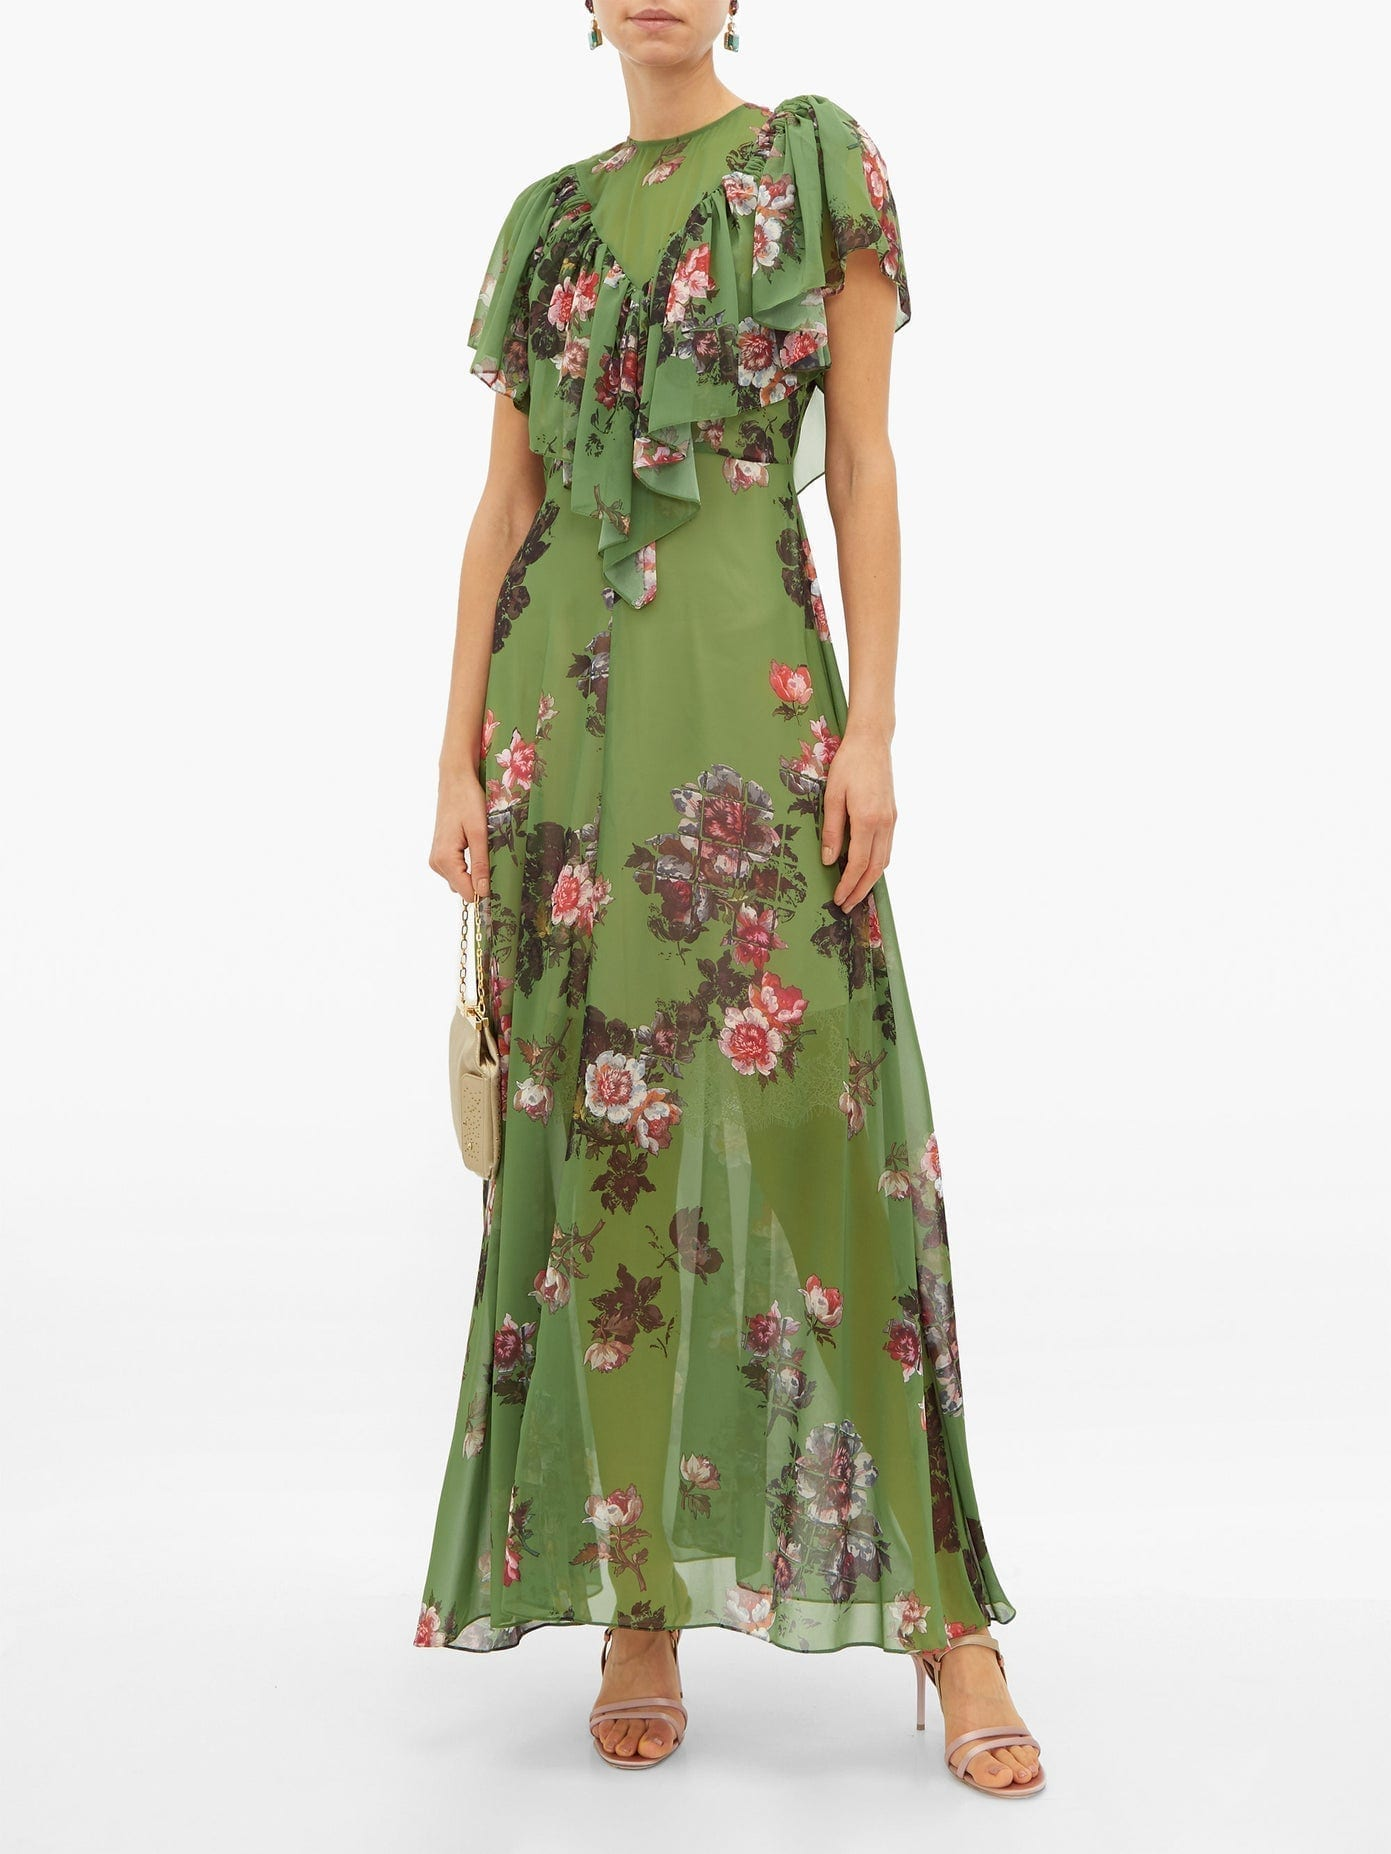 PREEN BY THORNTON BREGAZZI Irisa Gathered Floral-print Georgette Maxi Dress